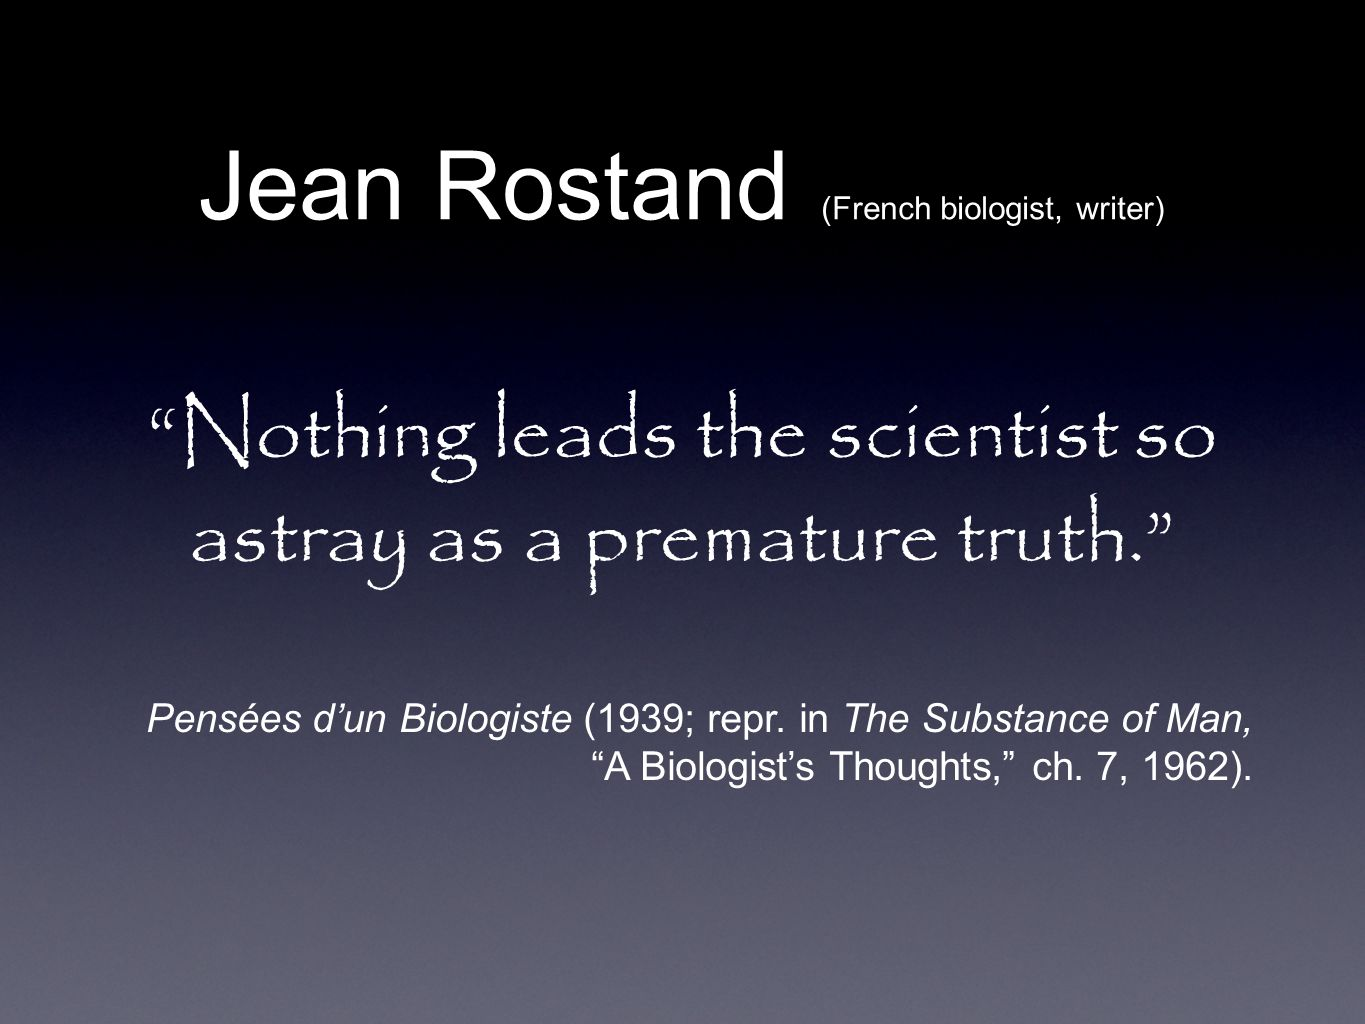 Nothing leads the scientist so astray as a premature truth.